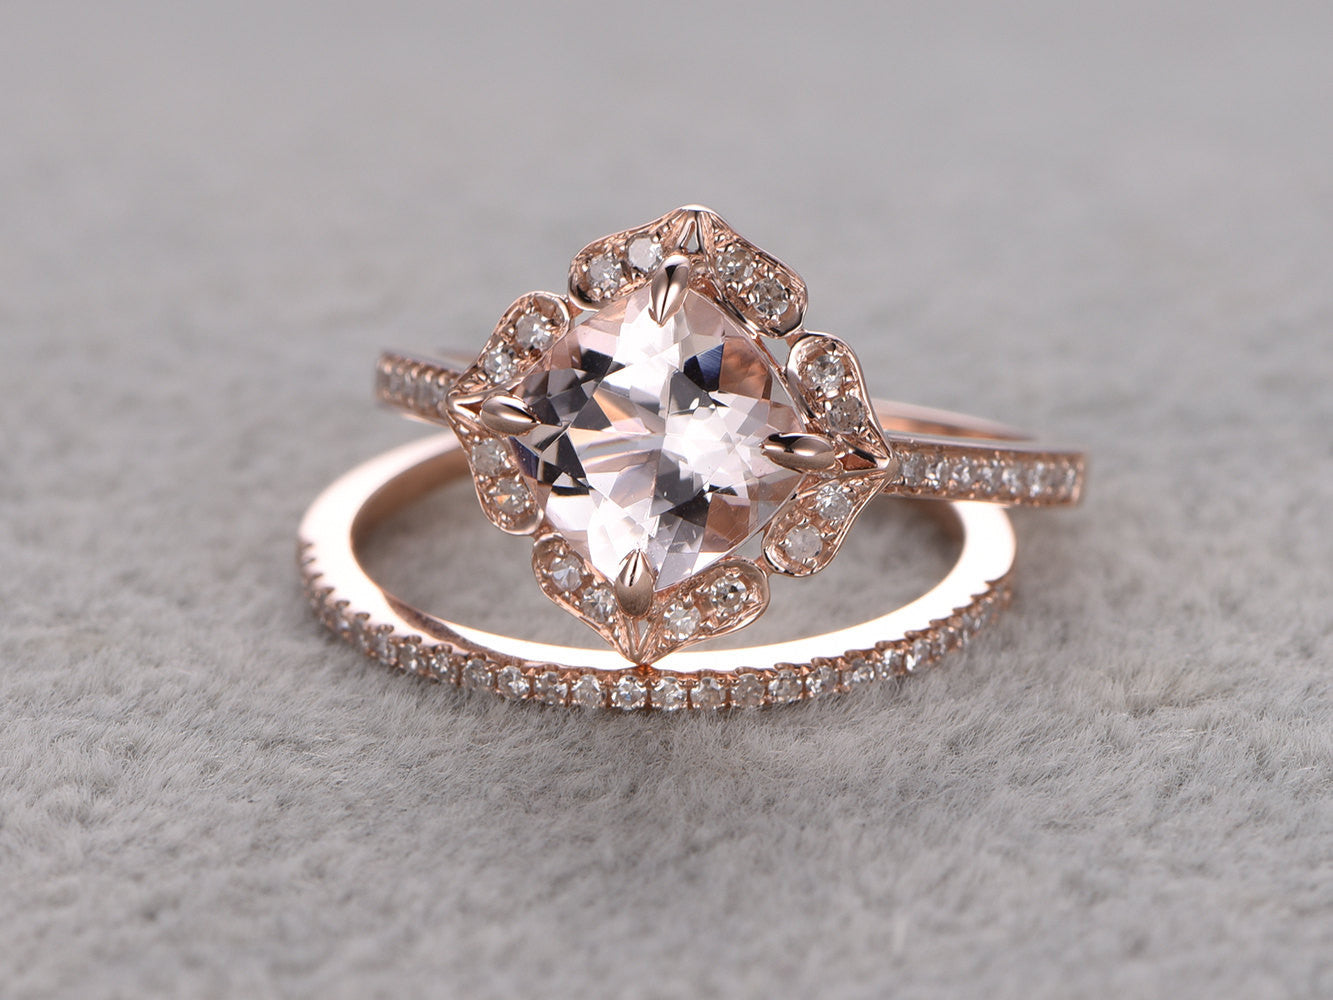 2pcs 8mm Morganite Bridal Ring Set,Engagement ring Rose gold,Diamond wedding band,14k,Cushion Cut,Promise Ring,Retro Vintage Floral,Art Deco